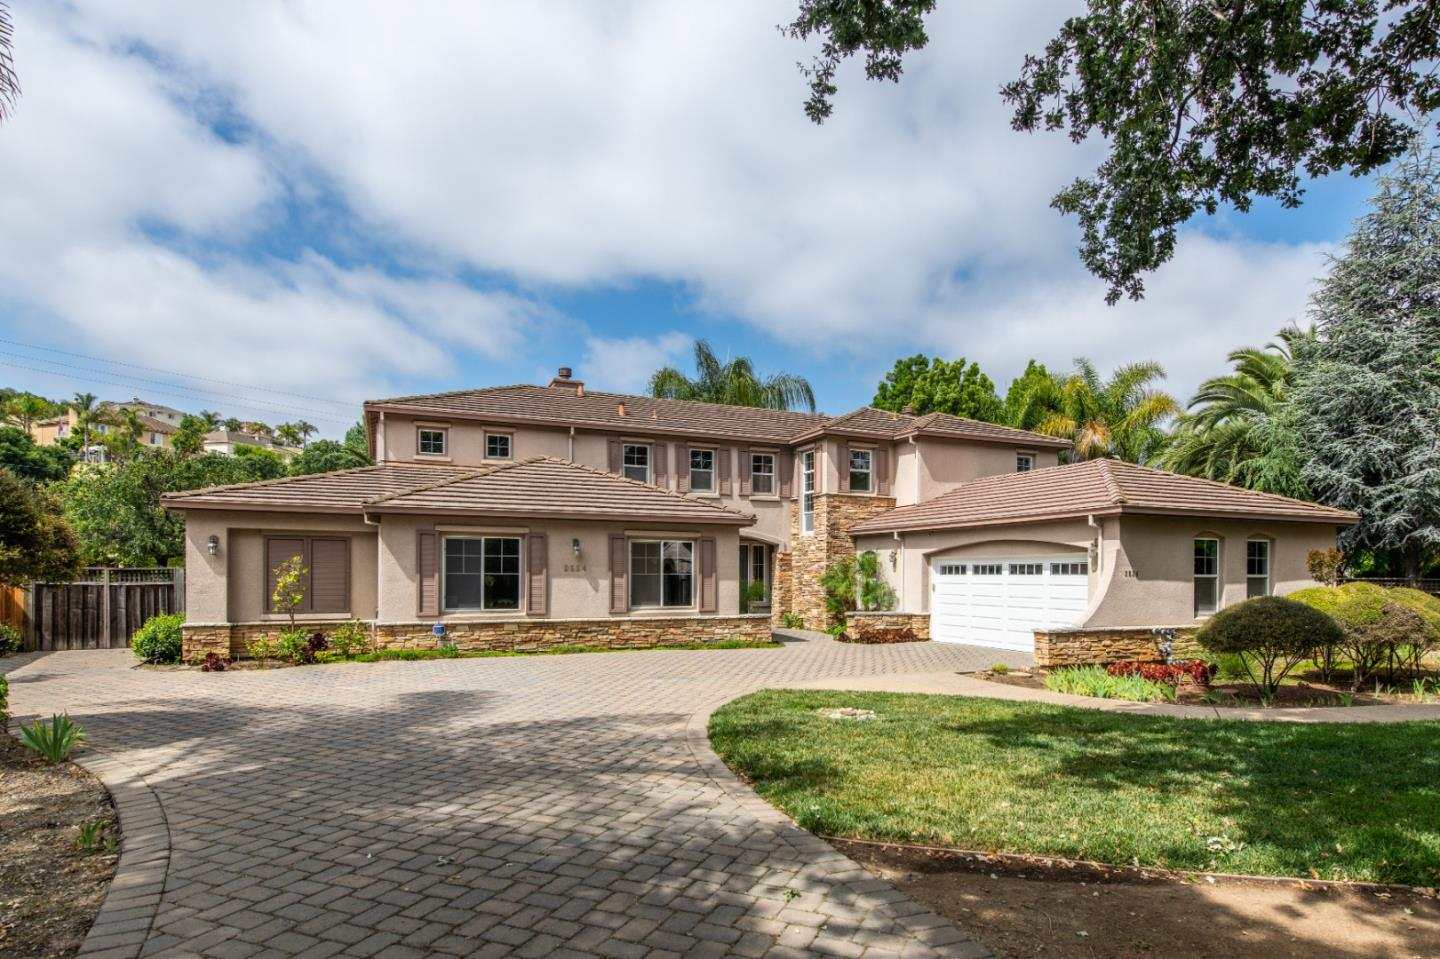 2524 Flowering Meadow LN, Evergreen in Santa Clara County, CA 95135 Home for Sale